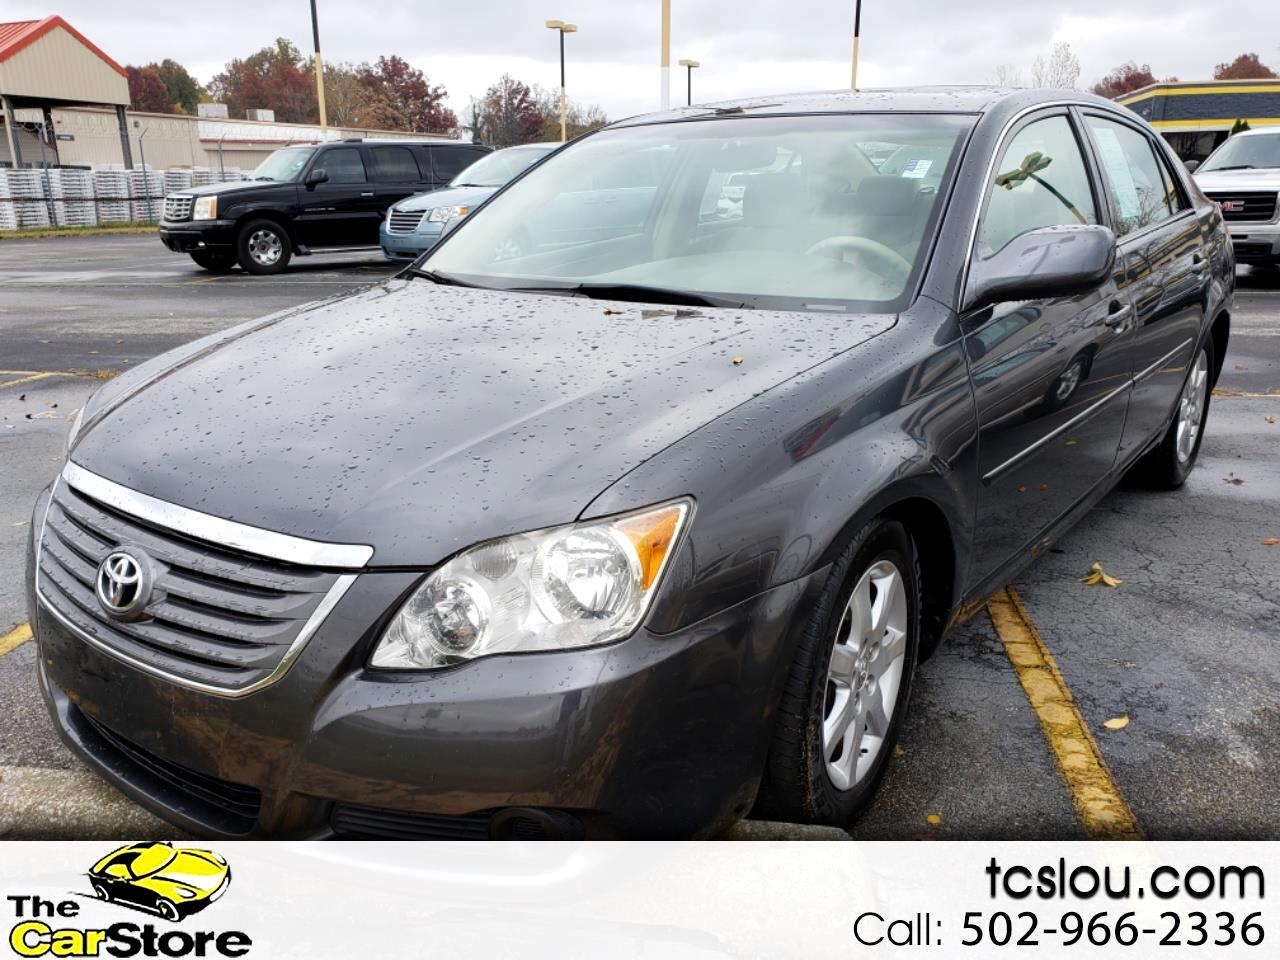 2008 Toyota Avalon 4dr Sdn Touring (Natl)